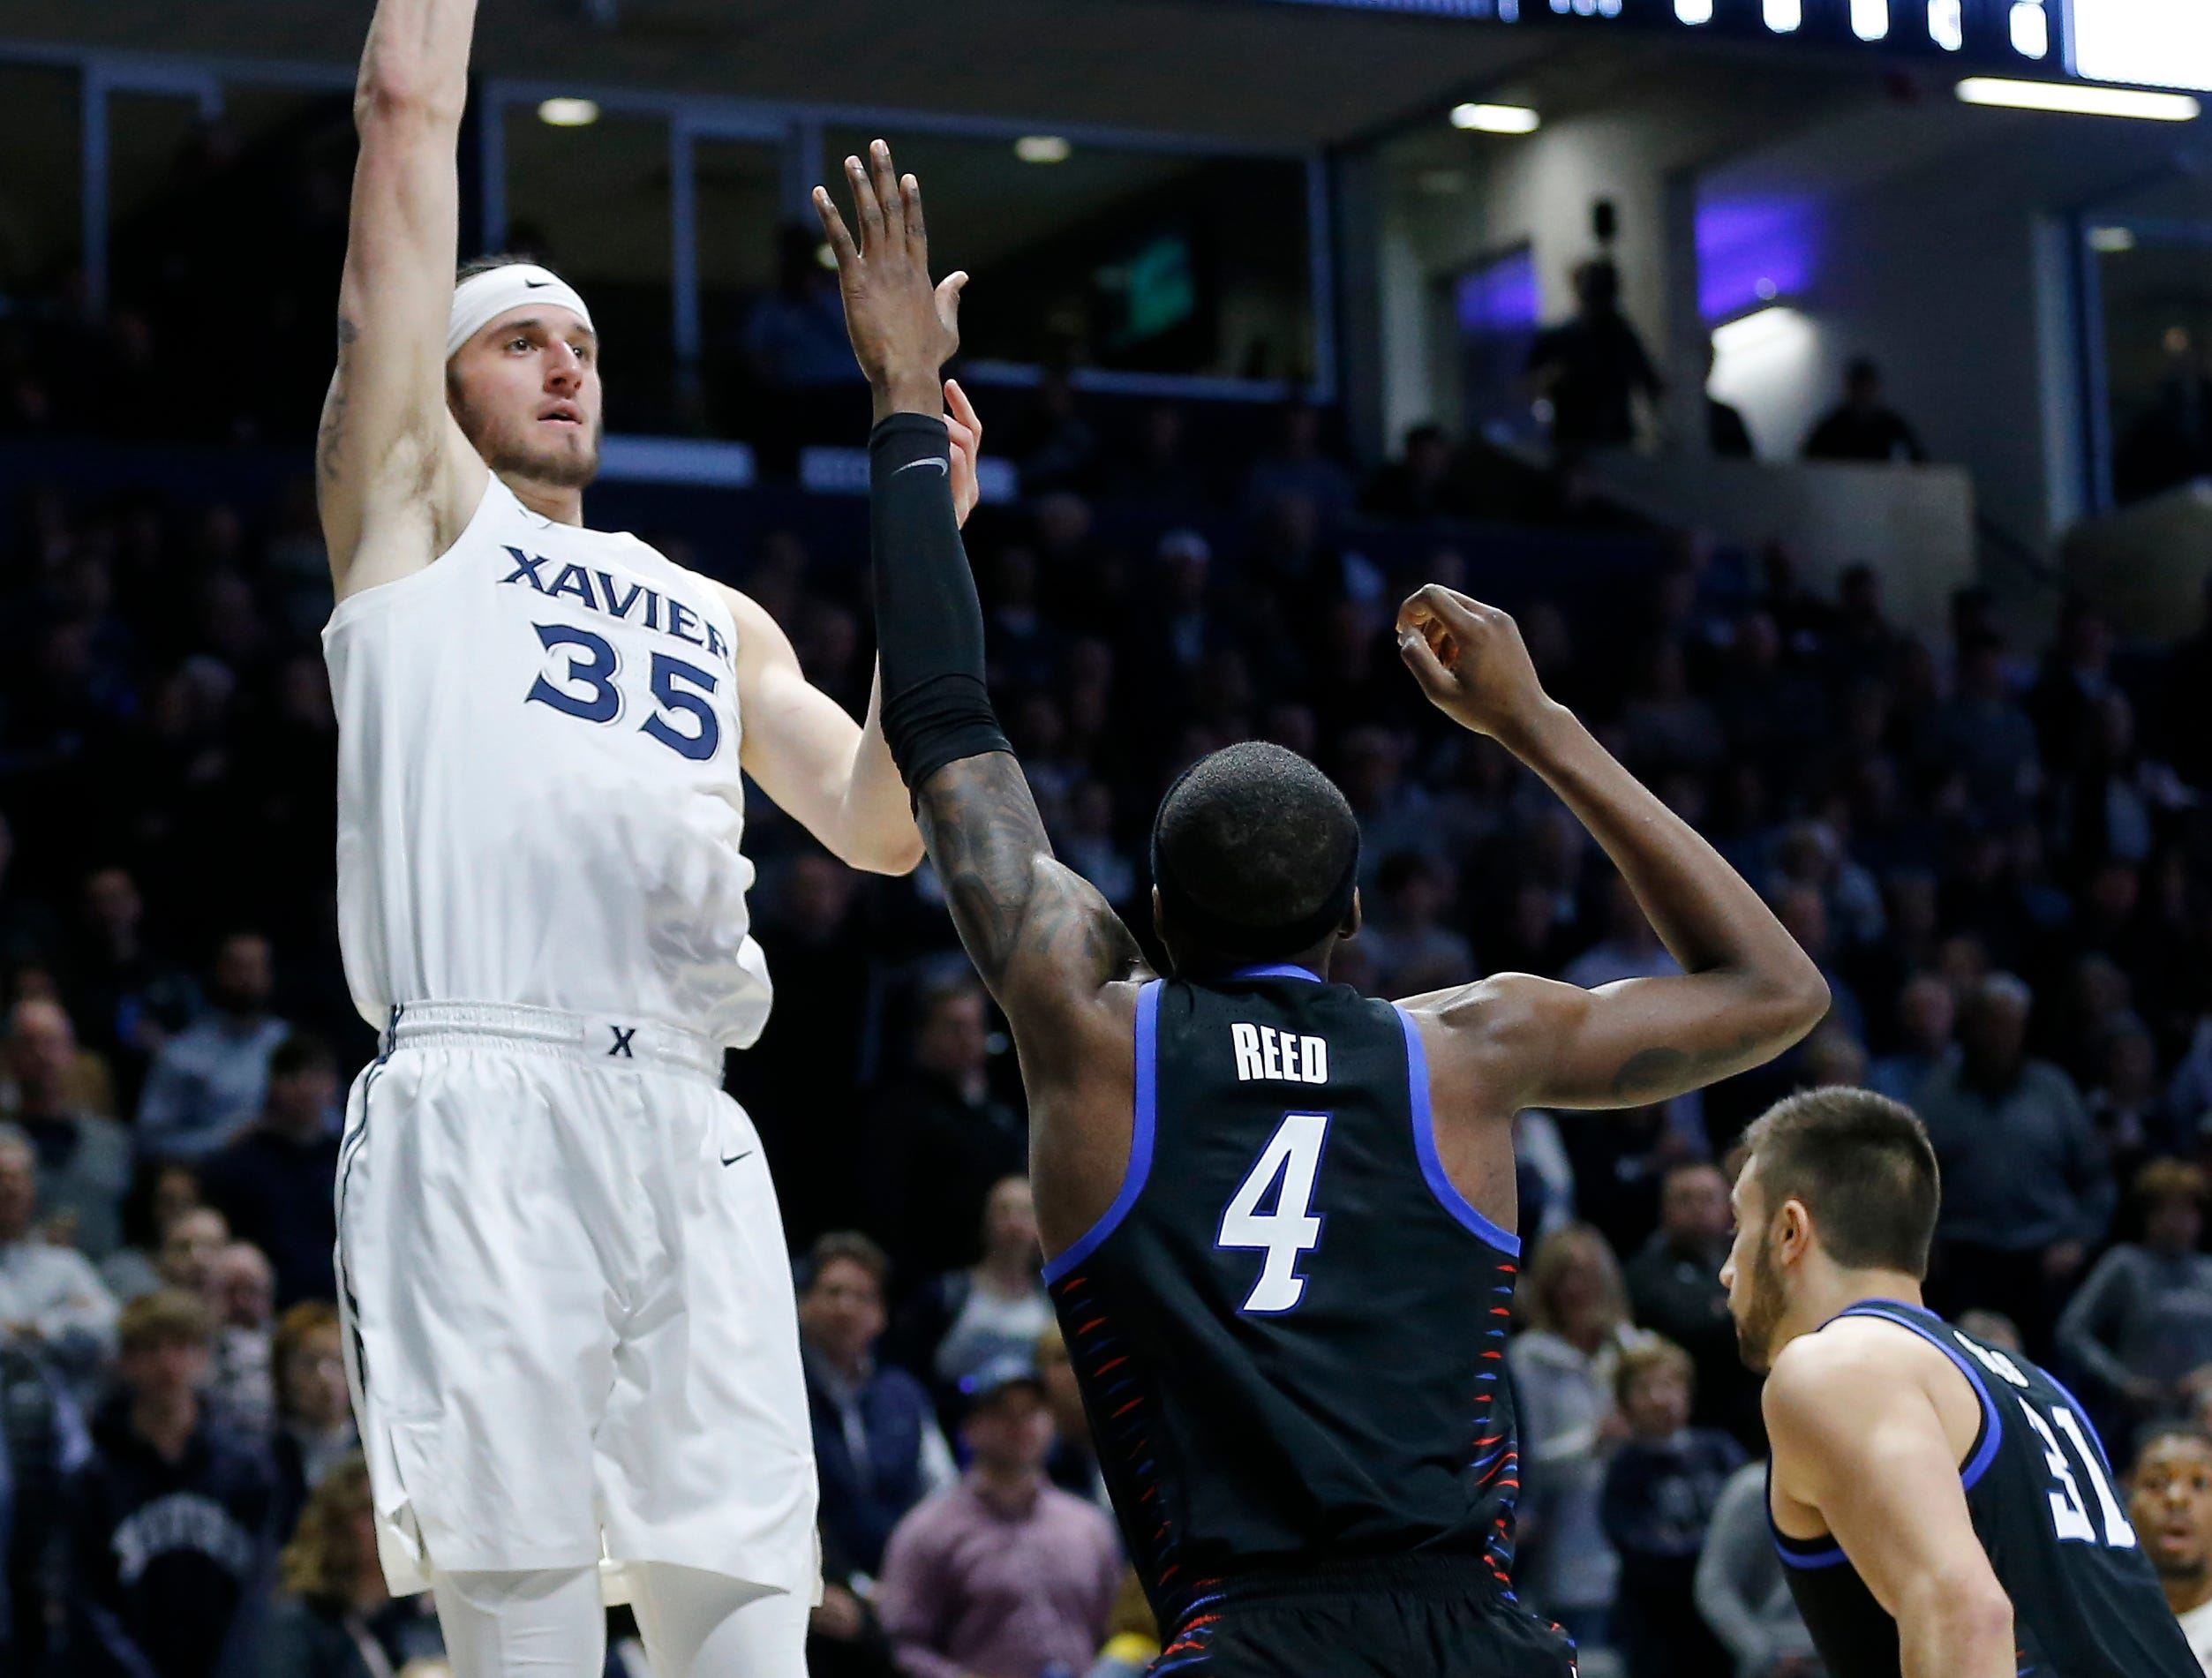 Xavier Musketeers forward Zach Hankins (35) puts up a shot in the first half of the NCAA Big East Conference game between the Xavier Musketeers and the DePaul Blue Demons at the Cintas Center in Cincinnati on Saturday, Feb. 9, 2019.